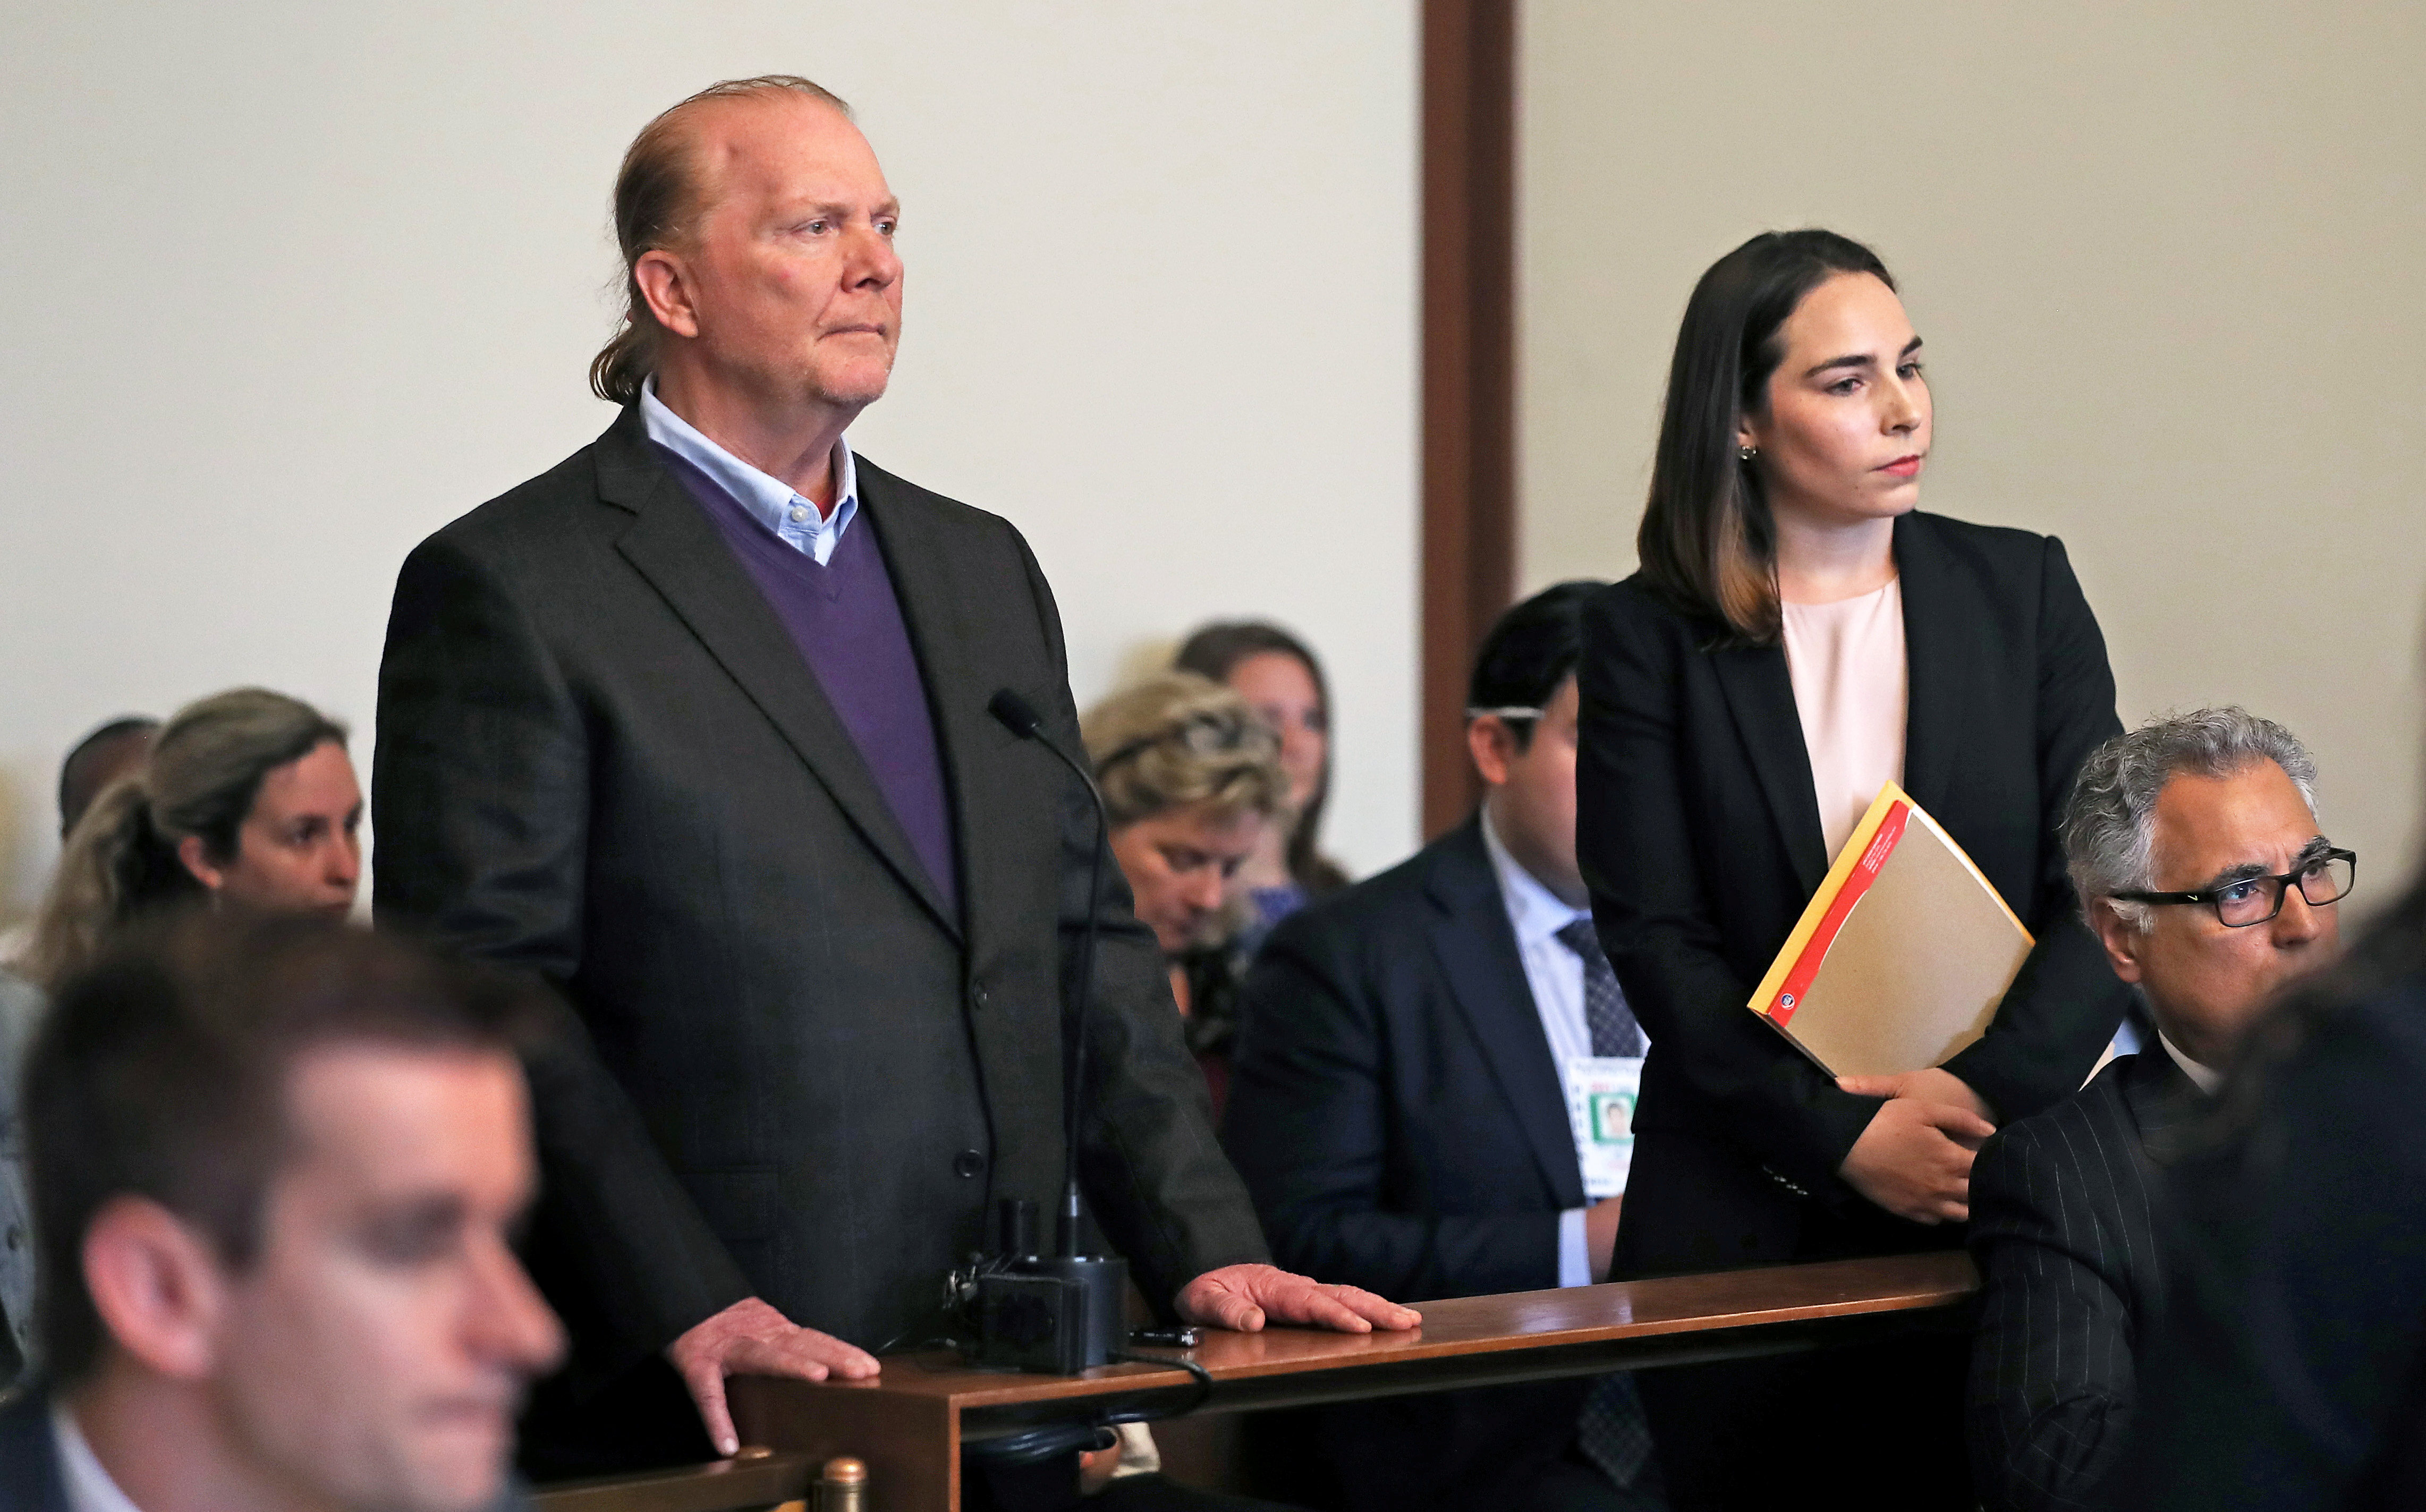 Celebrity chef Mario Batali, 58, is arraigned on a charge of indecent assault and battery at Boston Municpal Court in Boston, Massachusetts, U.S. May 24, 2019.  David L Ryan/Pool via REUTERS/File Photo